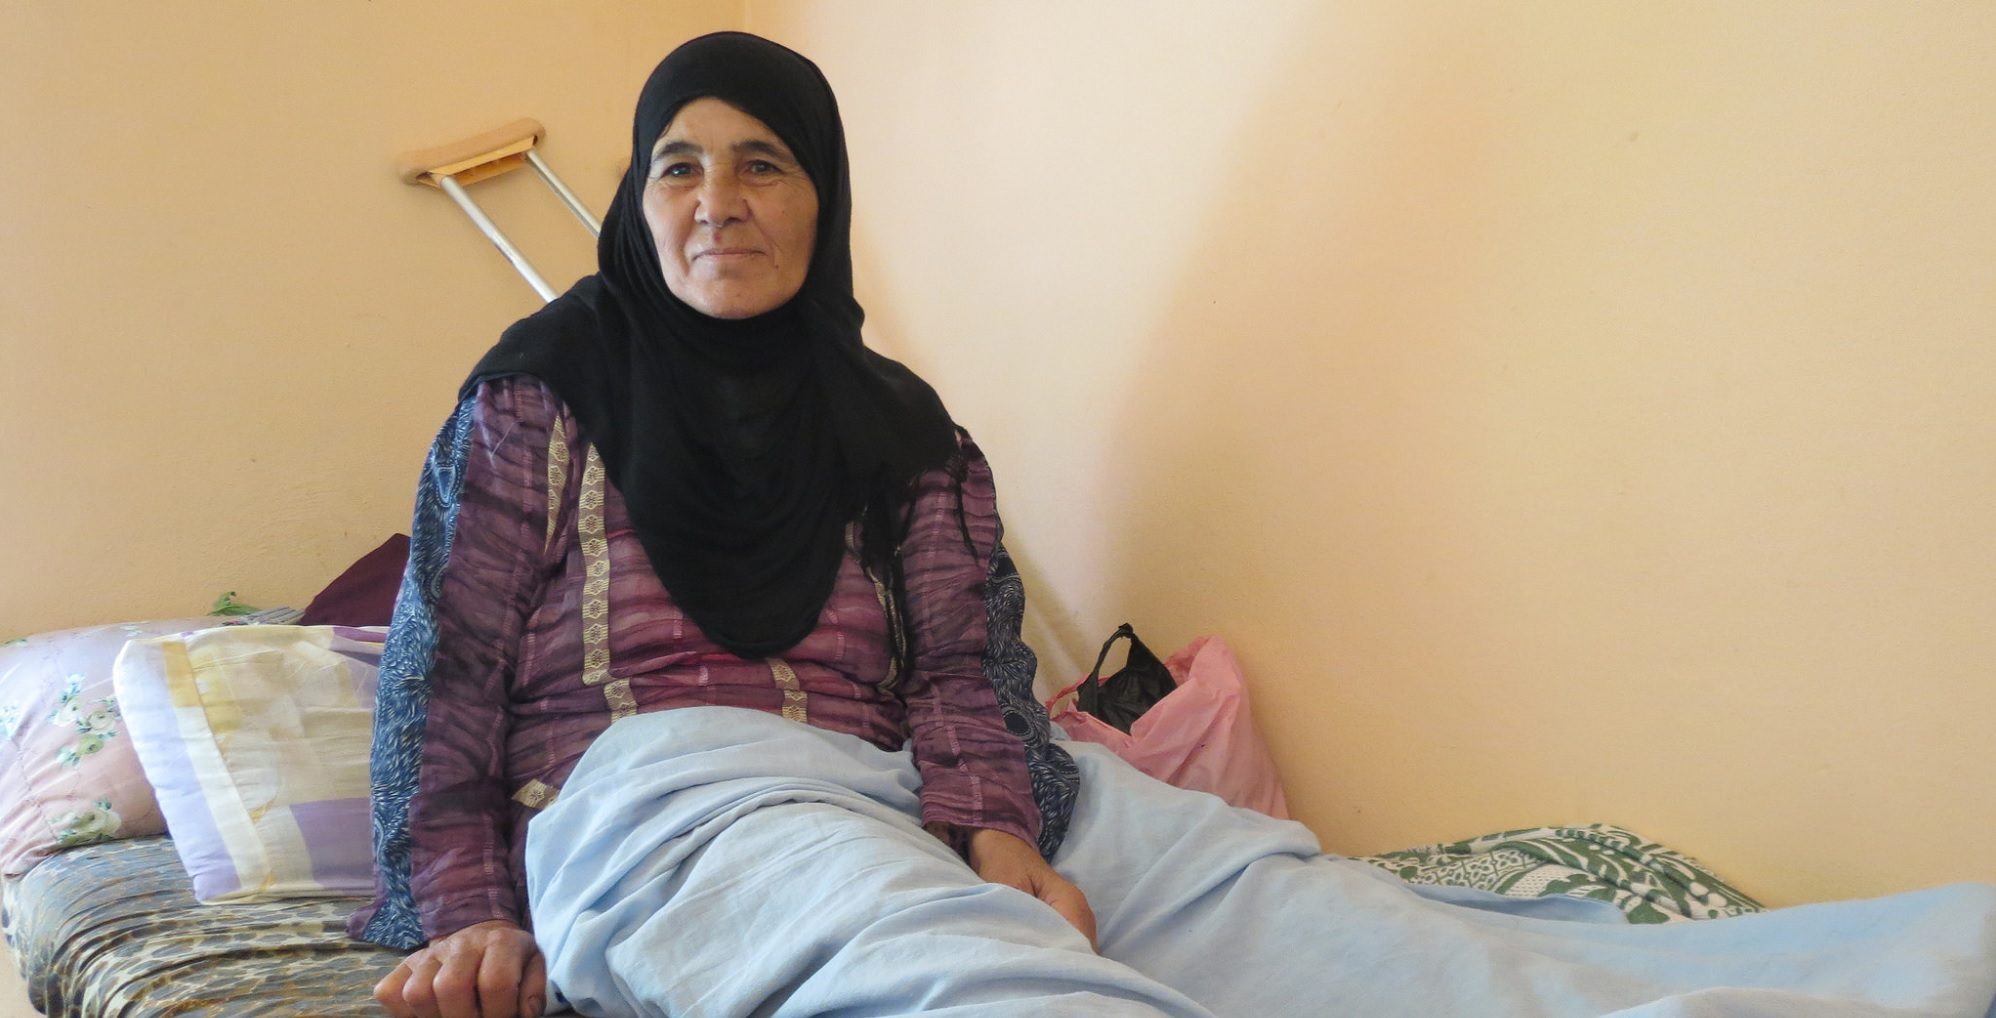 This 60-year-old woman from Lebanon was left unable to walk when a bomb injured her leg (c) Claire Catherinet/HelpAge International